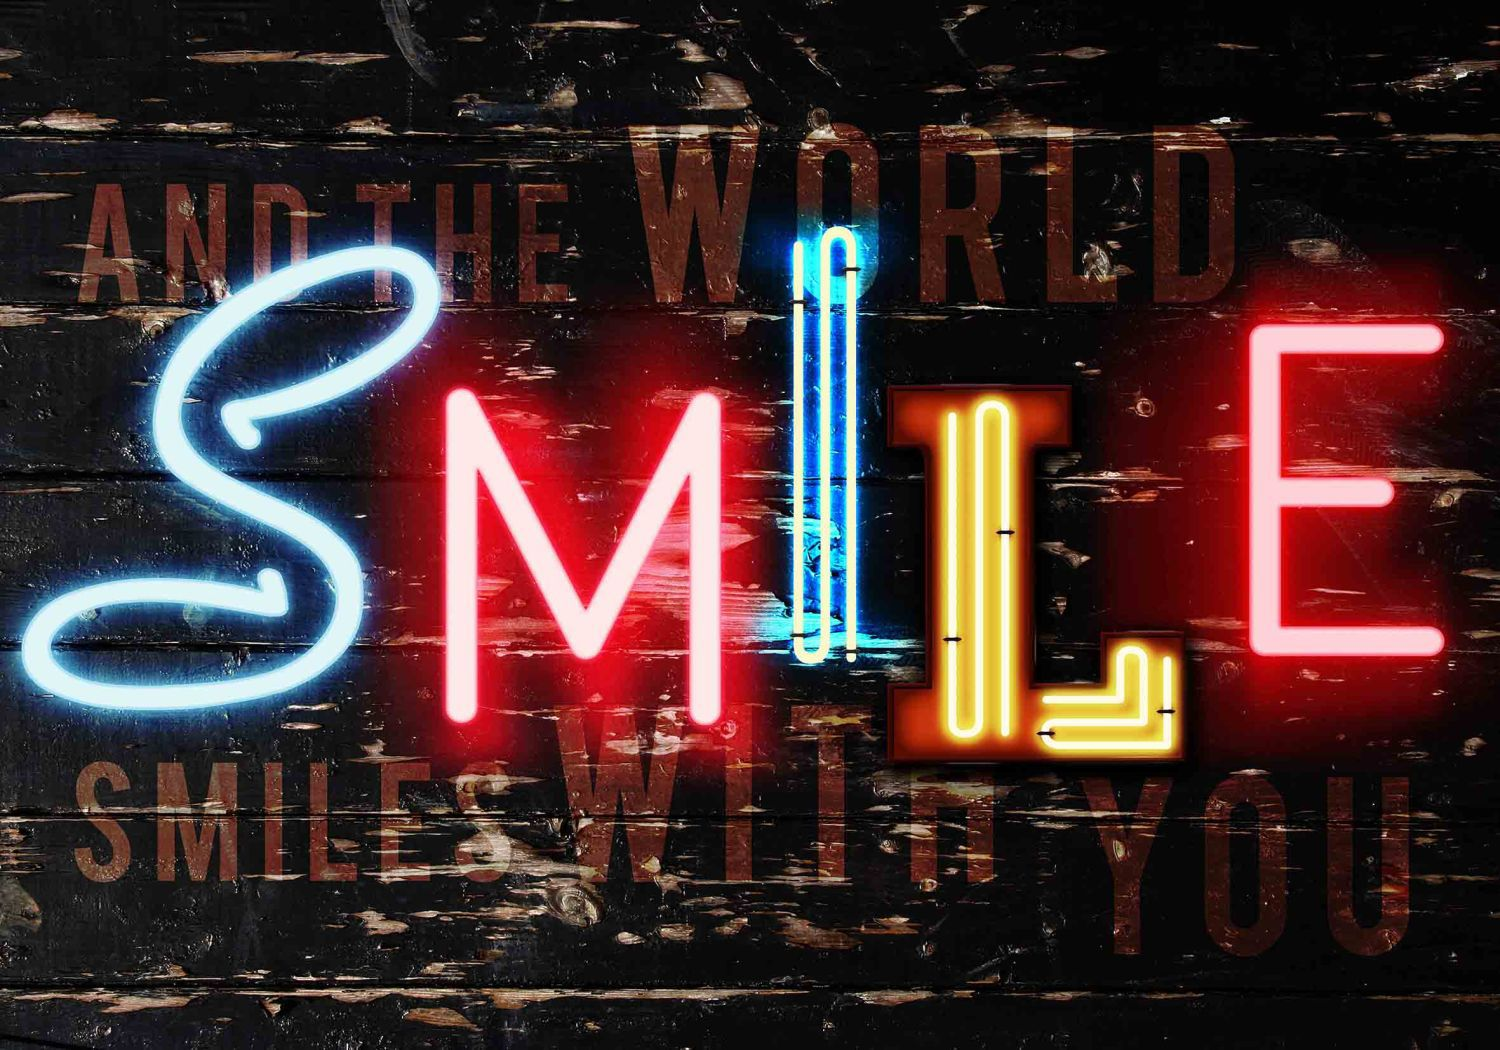 Smile wall art